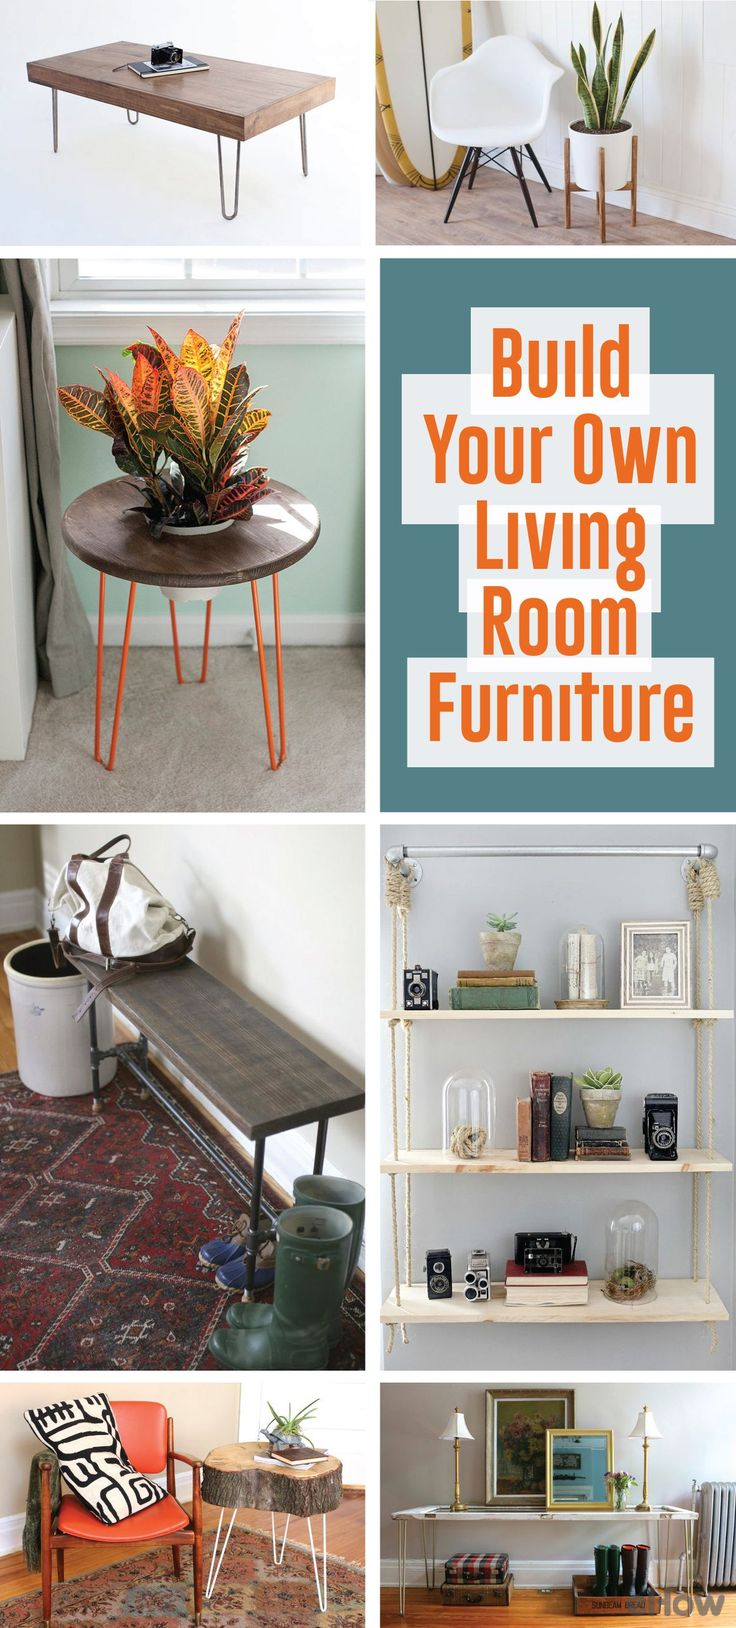 119 Best Images About Diy Furniture On Pinterest Copper